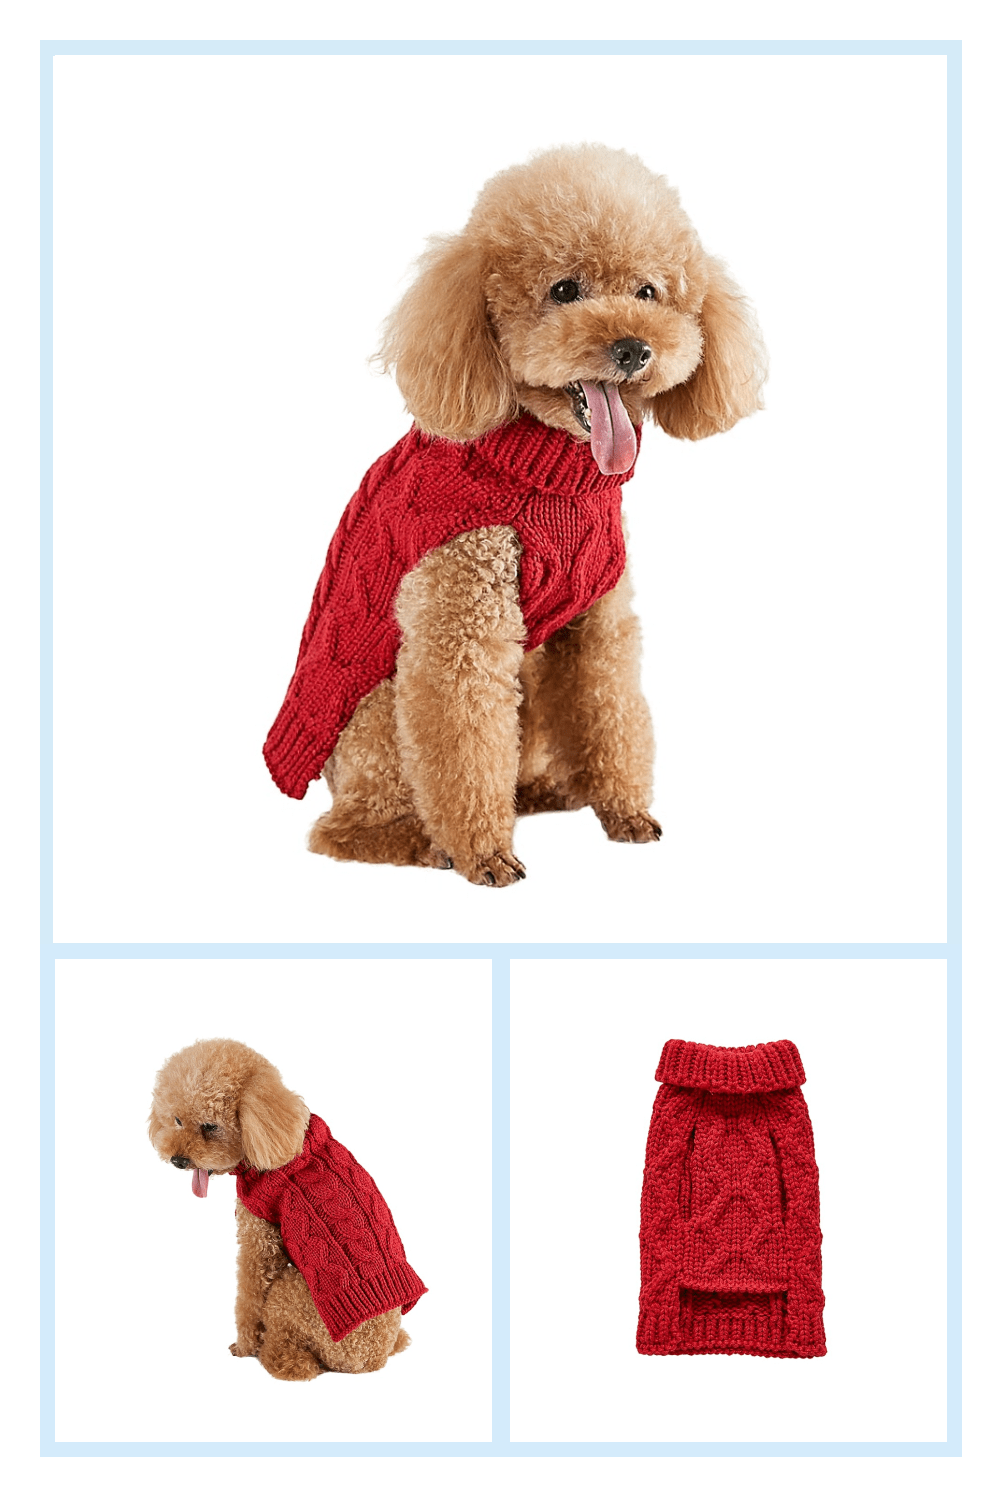 Bee & Willow Home Medium Cable Knit Dog Sweater In Red